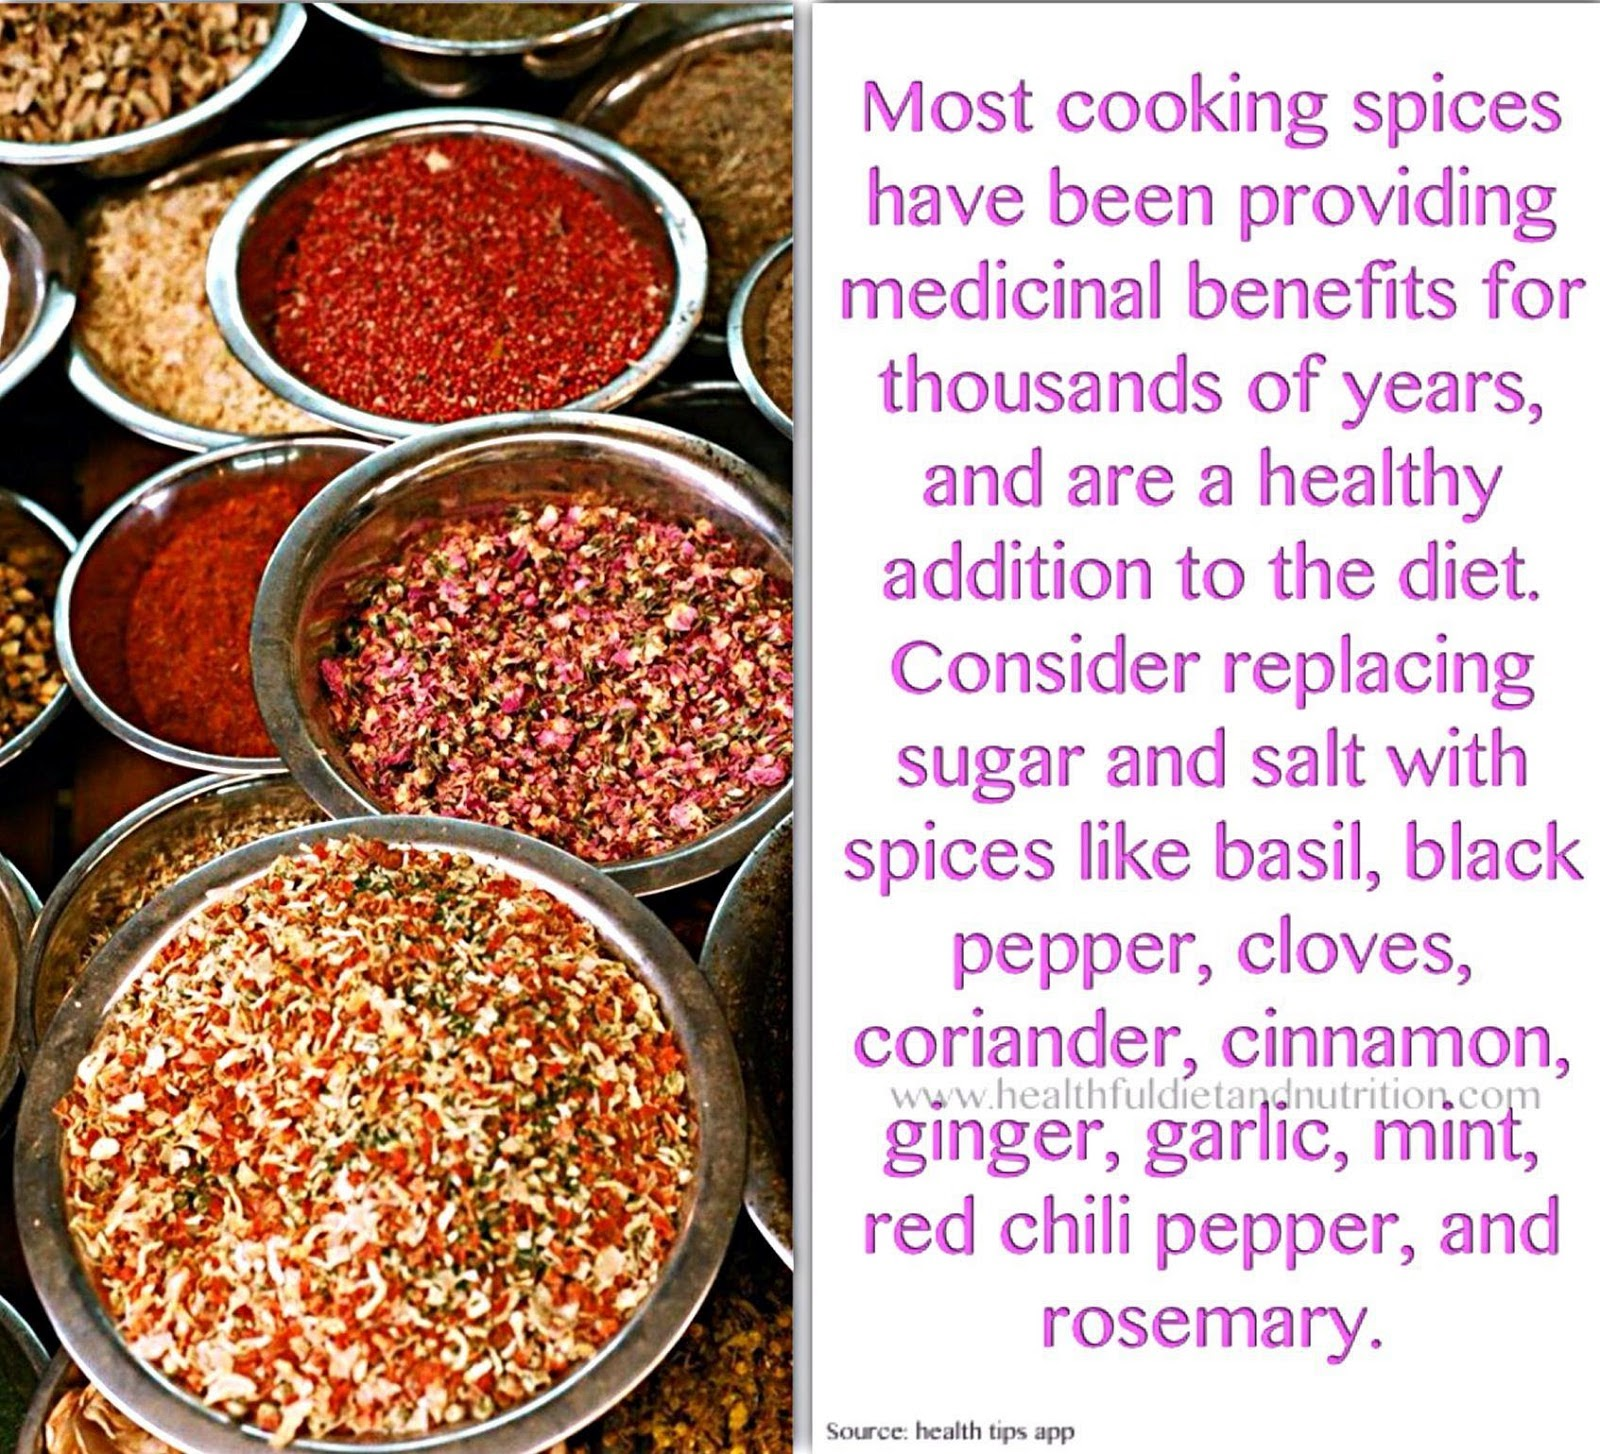 Replace Sugar and Salt With Spices